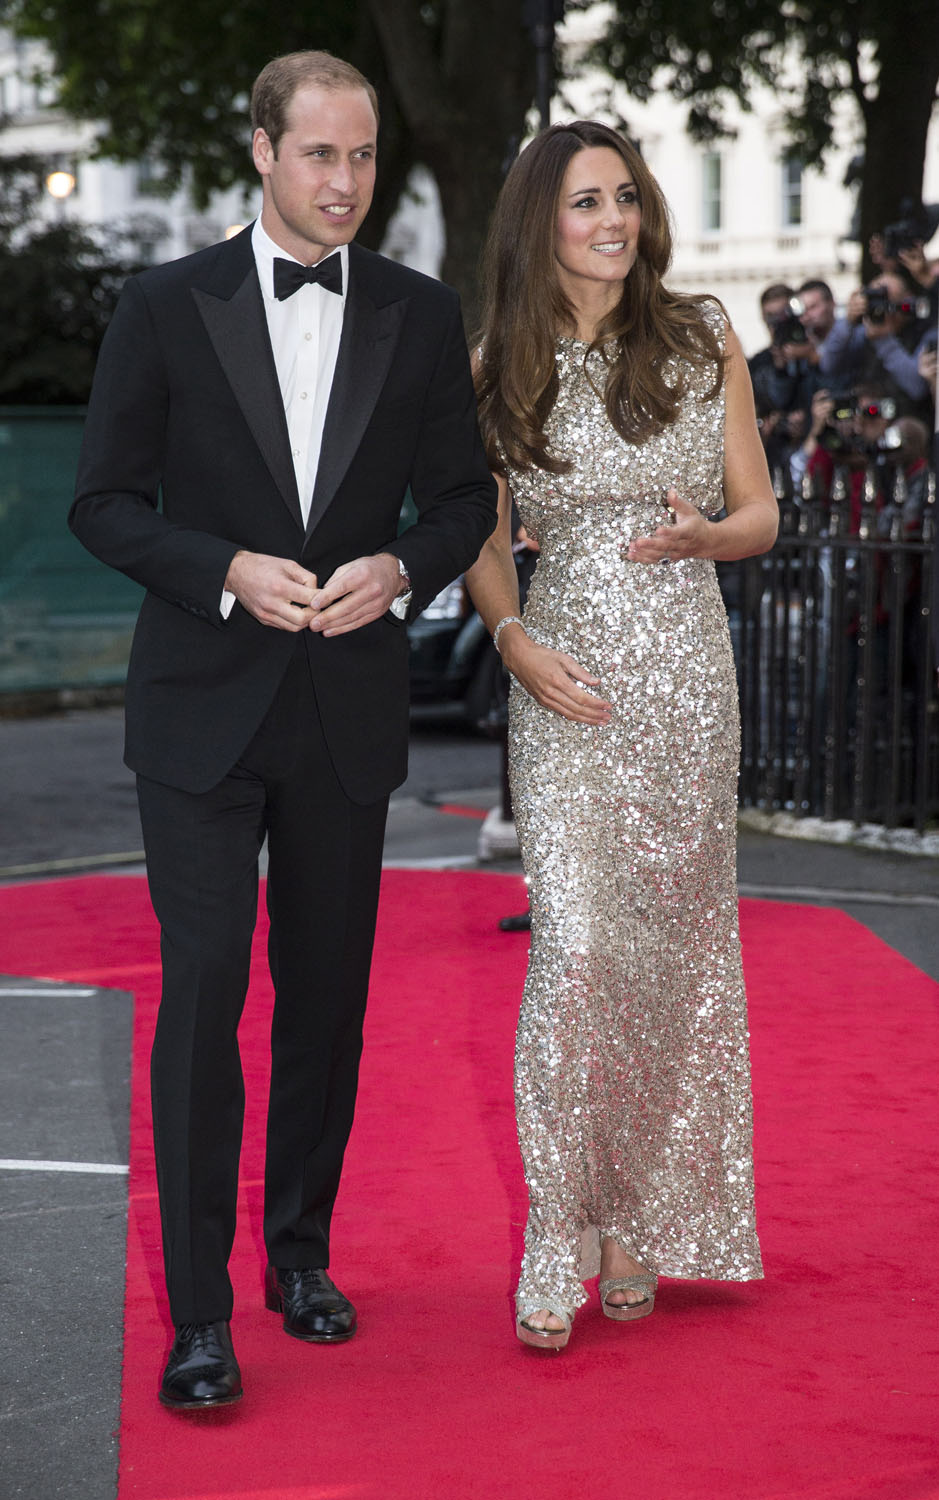 <strong>Dazzling in Silver Sequins</strong>Britain's Prince William, the Duke of Cambridge, and his wife Catherine, the Duchess of Cambridge, arrive to attend the Tusk Conservation Awards at The Royal Society in London, September 12, 2013.